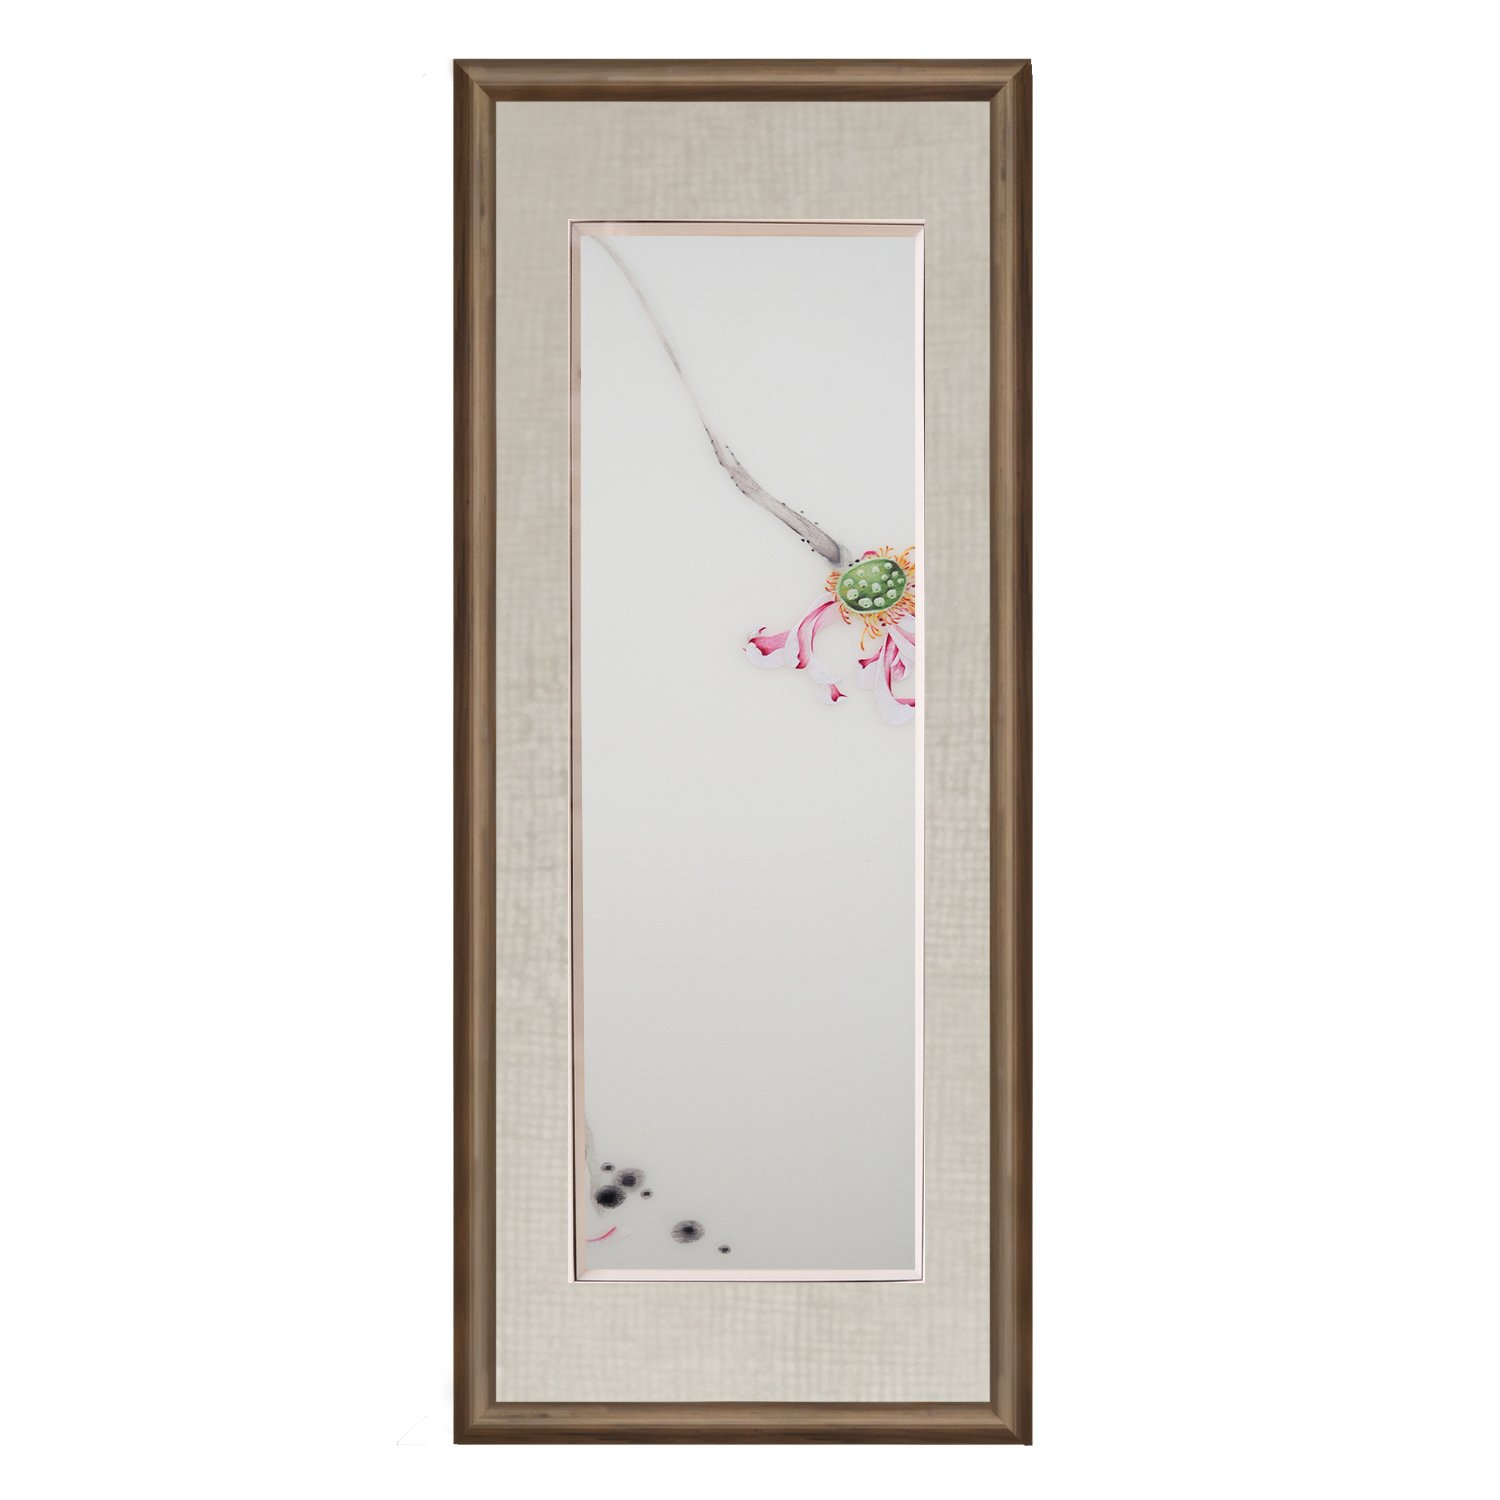 Vivimin 100% Handmade Embroidery Chinese Ink Painting Boxwood Framed Lotus and lotus root Modern Artwork Hanging Wall Decoration Souvenir Christmas Gift Fashion Collectible Gift Painting Art